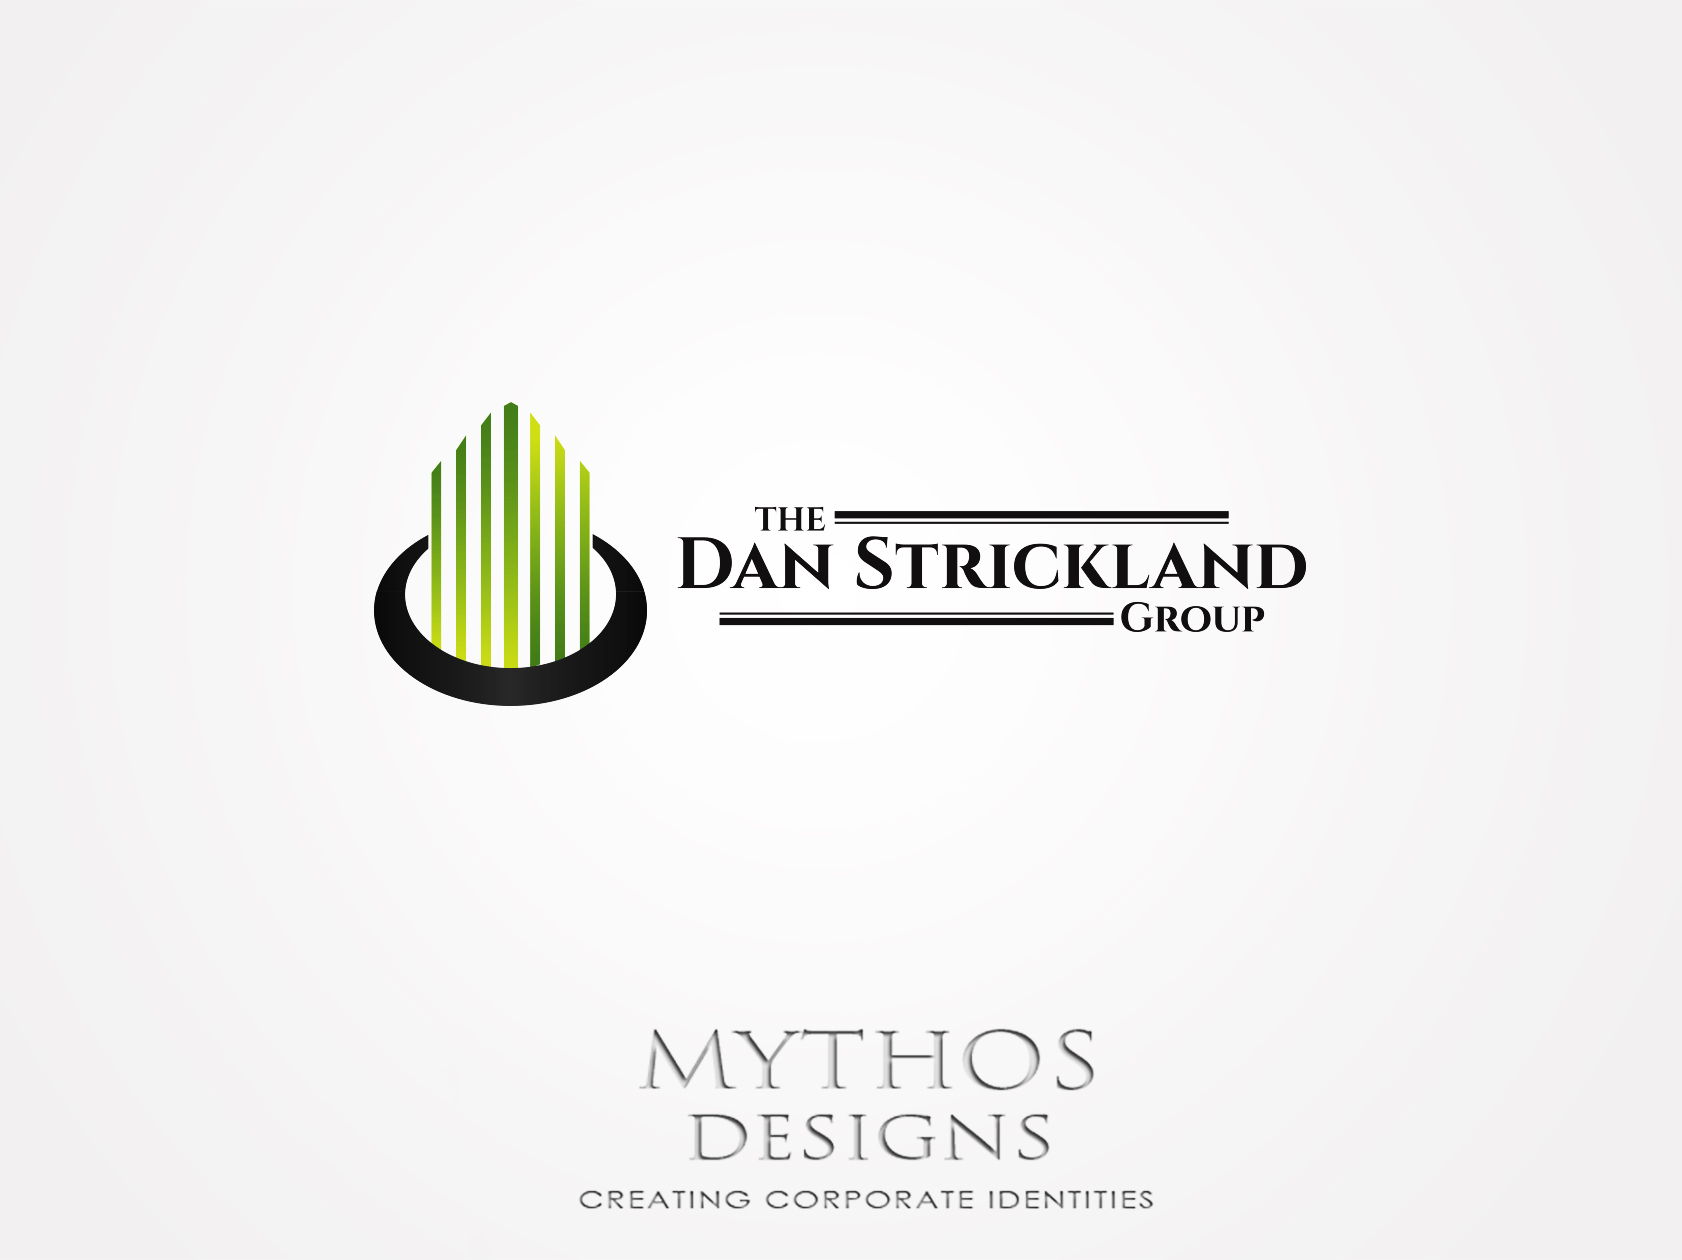 Logo Design by Mythos Designs - Entry No. 25 in the Logo Design Contest Creative Logo Design for The Dan Strickland Group.